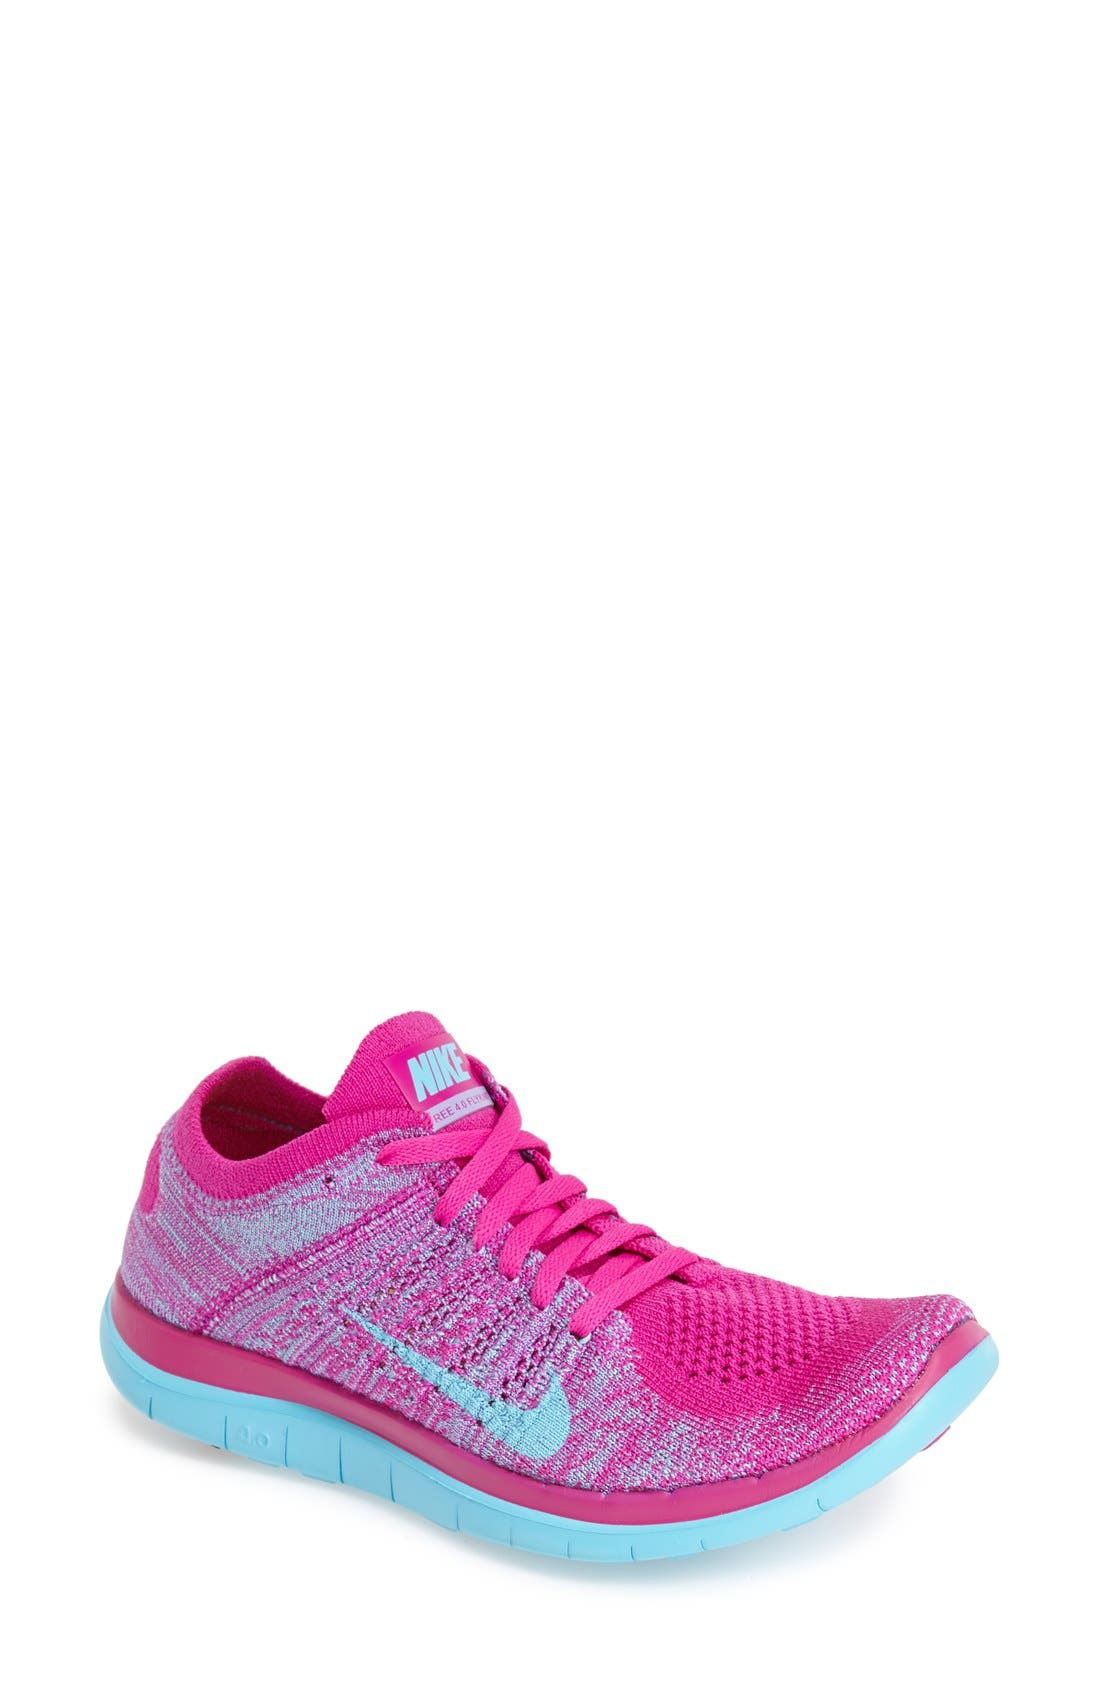 Alternate Image 1 Selected - Nike 'Free 4.0 Flyknit' Running Shoe (Women)